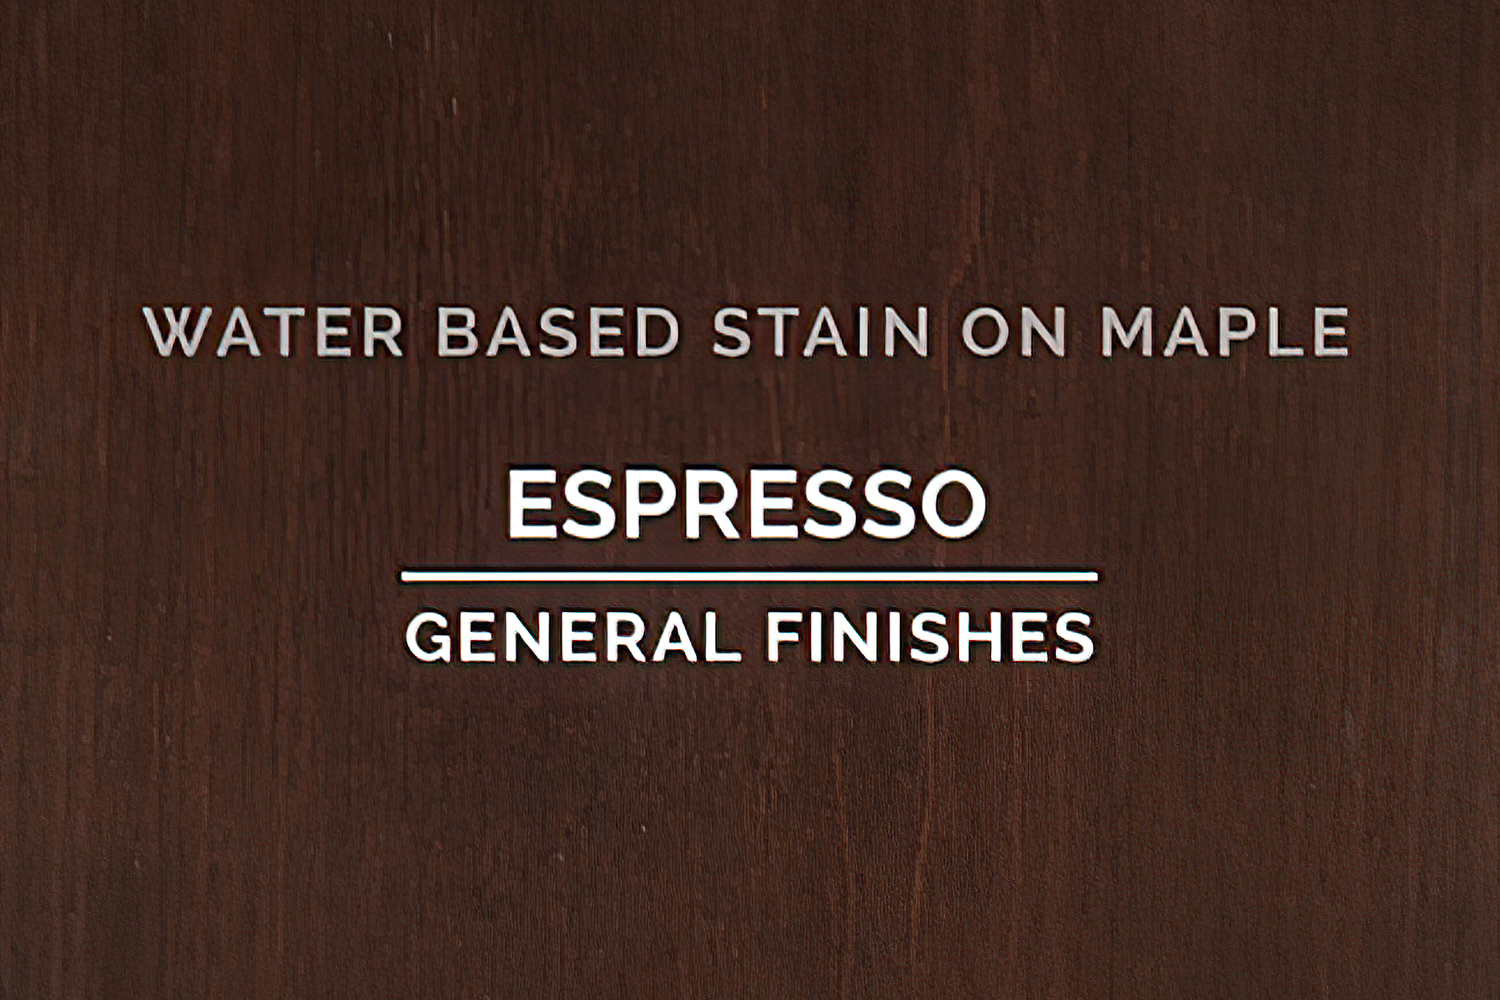 General Finishes Espresso Stain Water Based